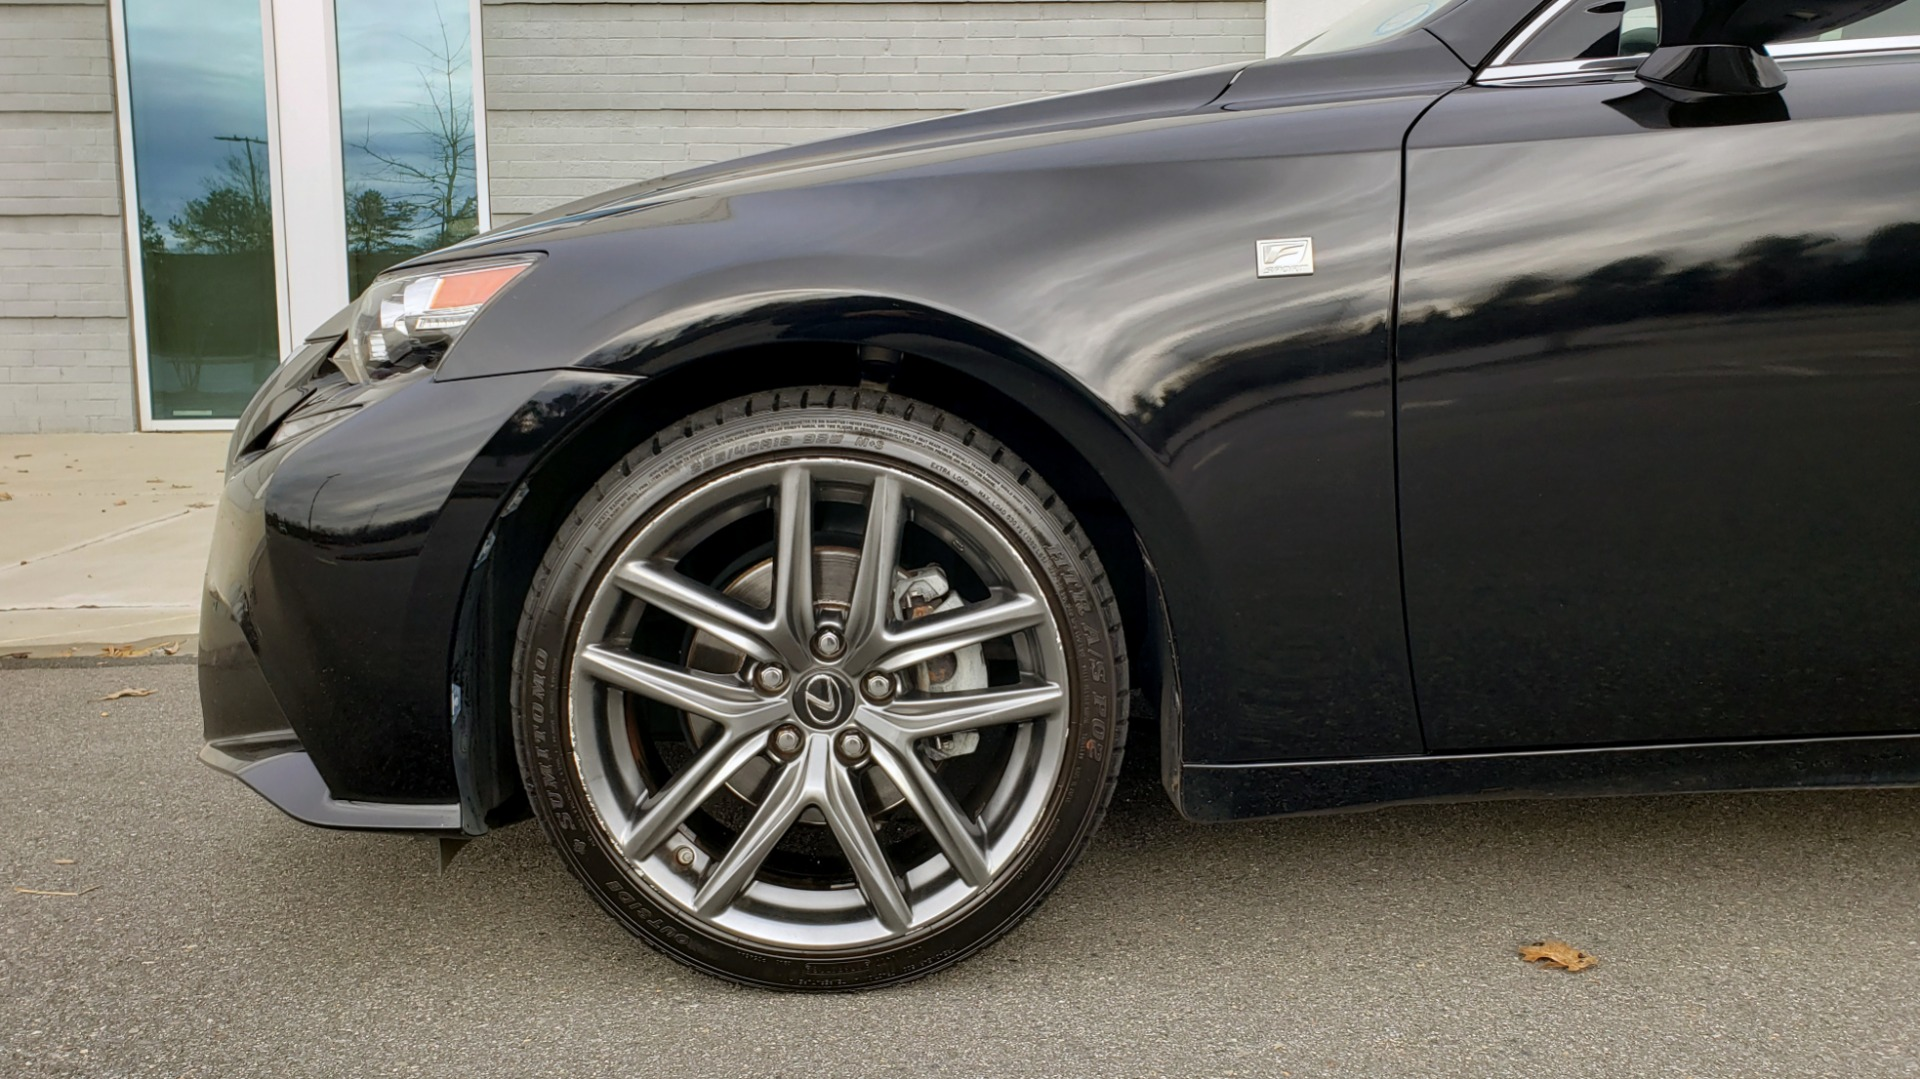 Used 2015 Lexus IS 250 F-SPORT / BLIND SPOT MON / SUNROOF / REARVIEW for sale Sold at Formula Imports in Charlotte NC 28227 77